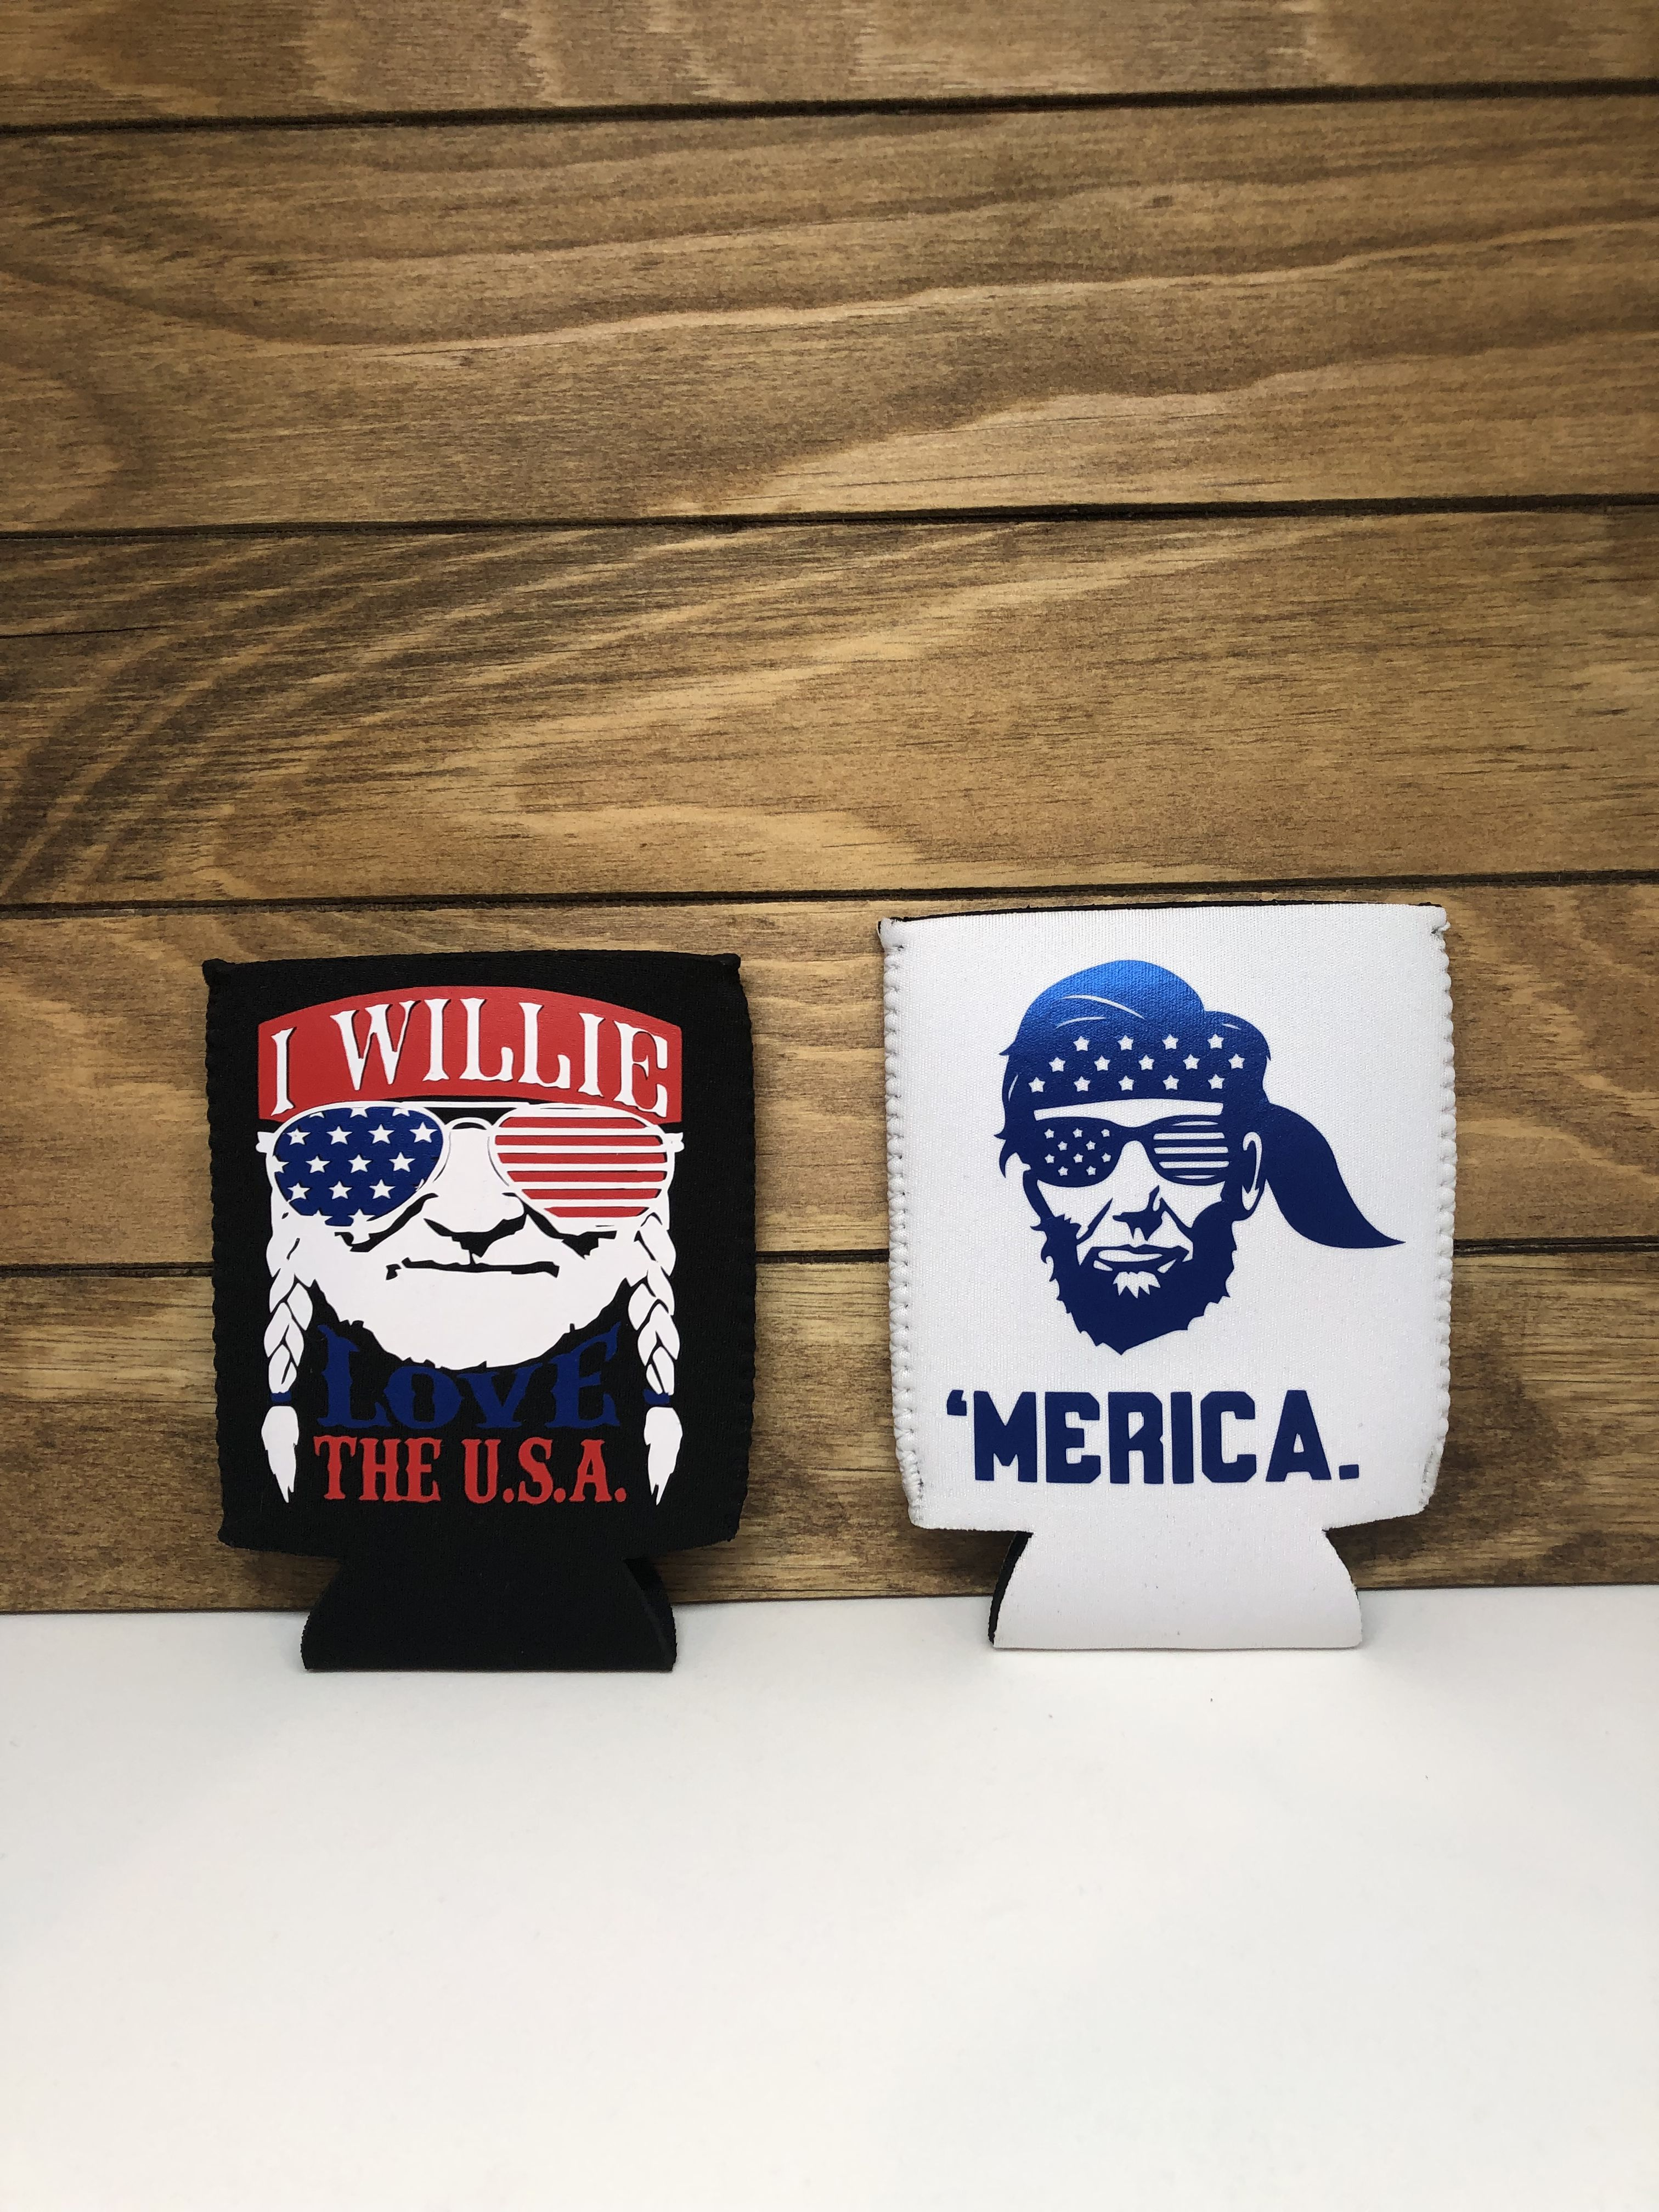 Express your American pride with these fun can coolers